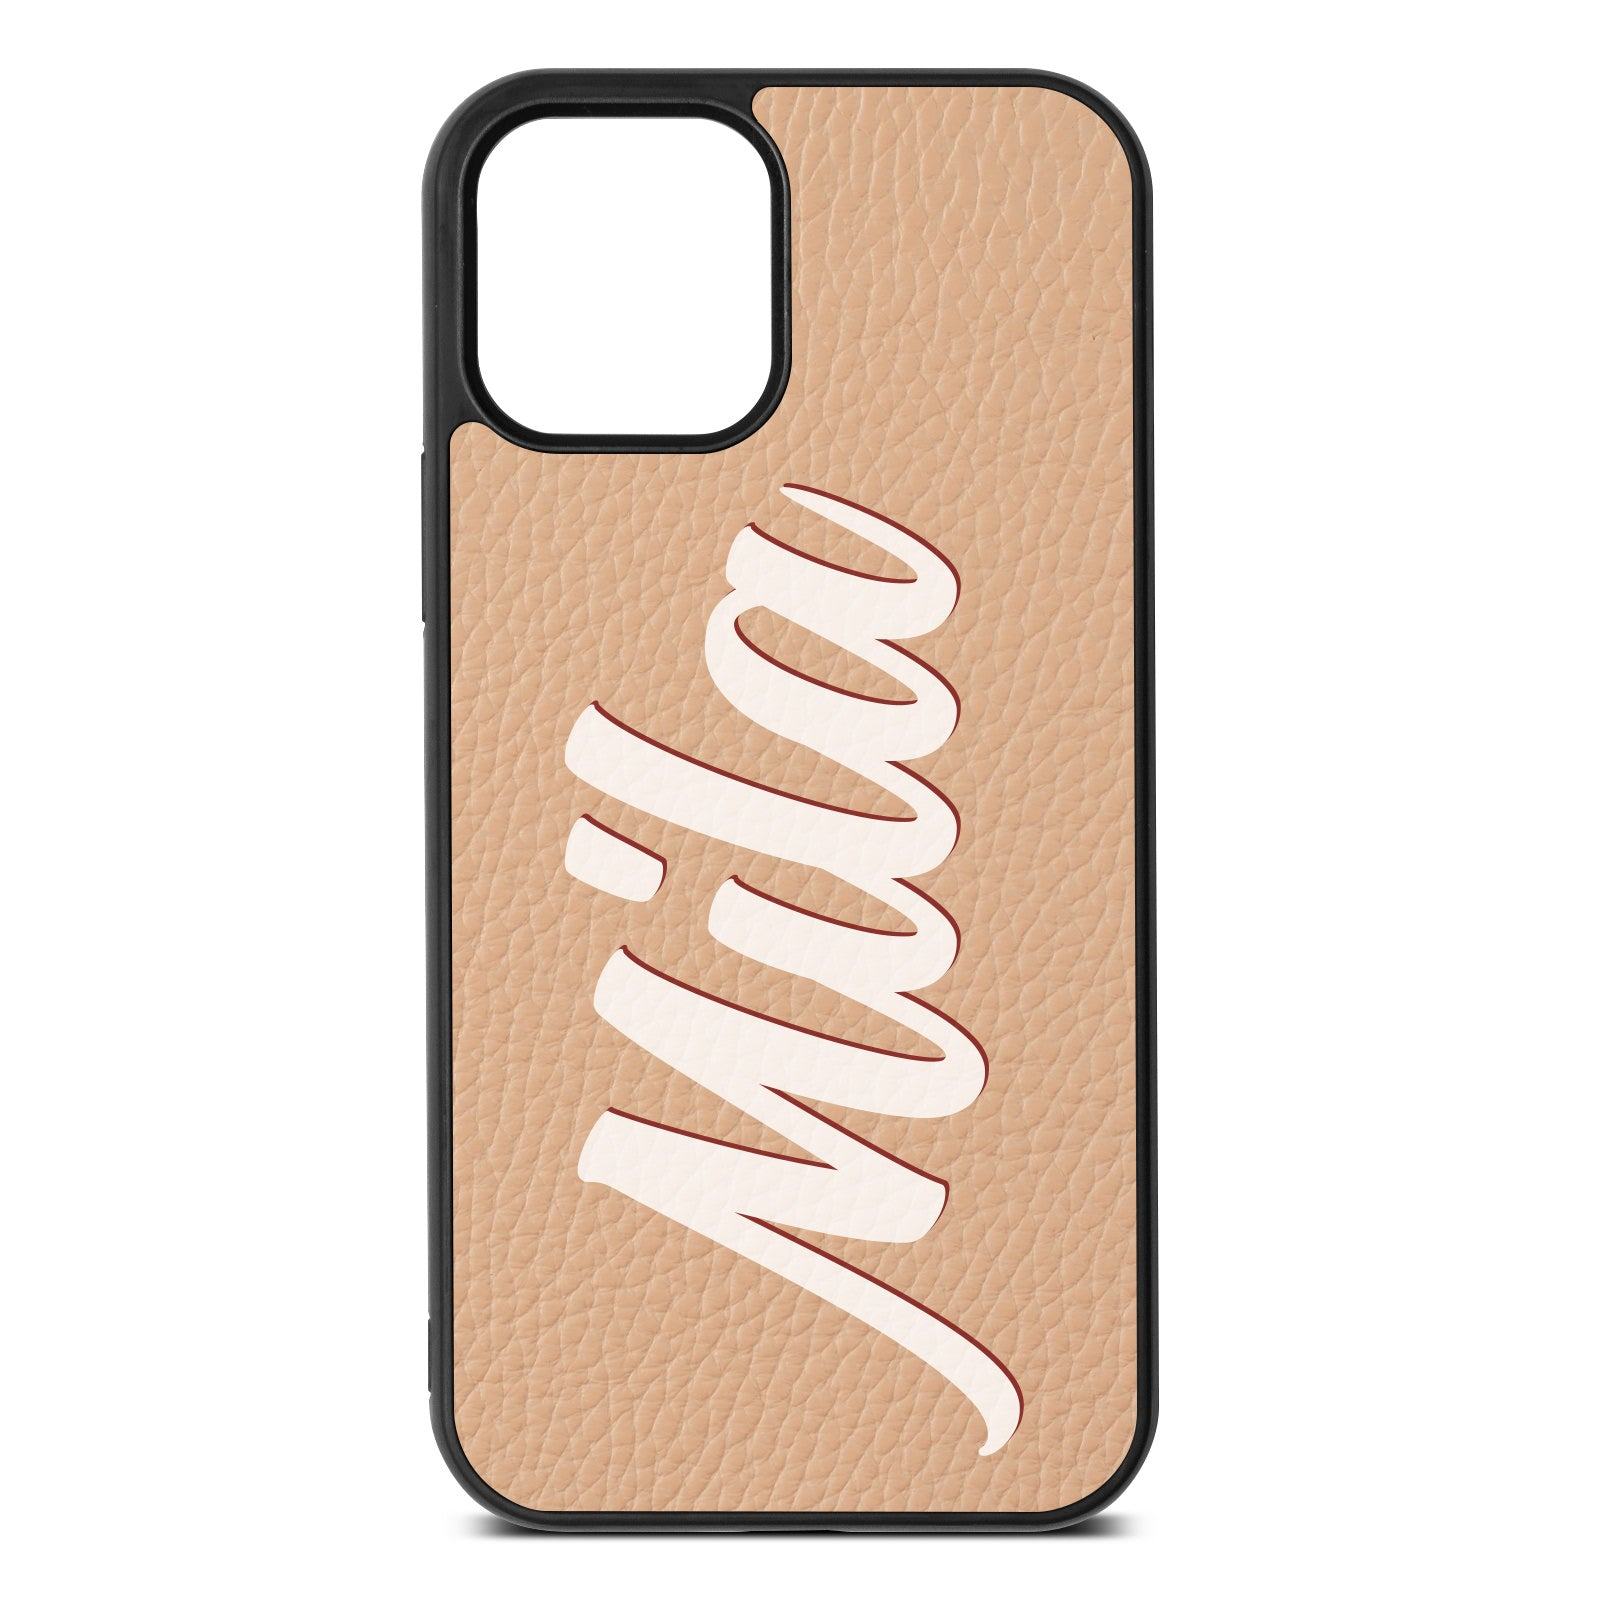 iPhone 12 Nude Pebble Leather Case